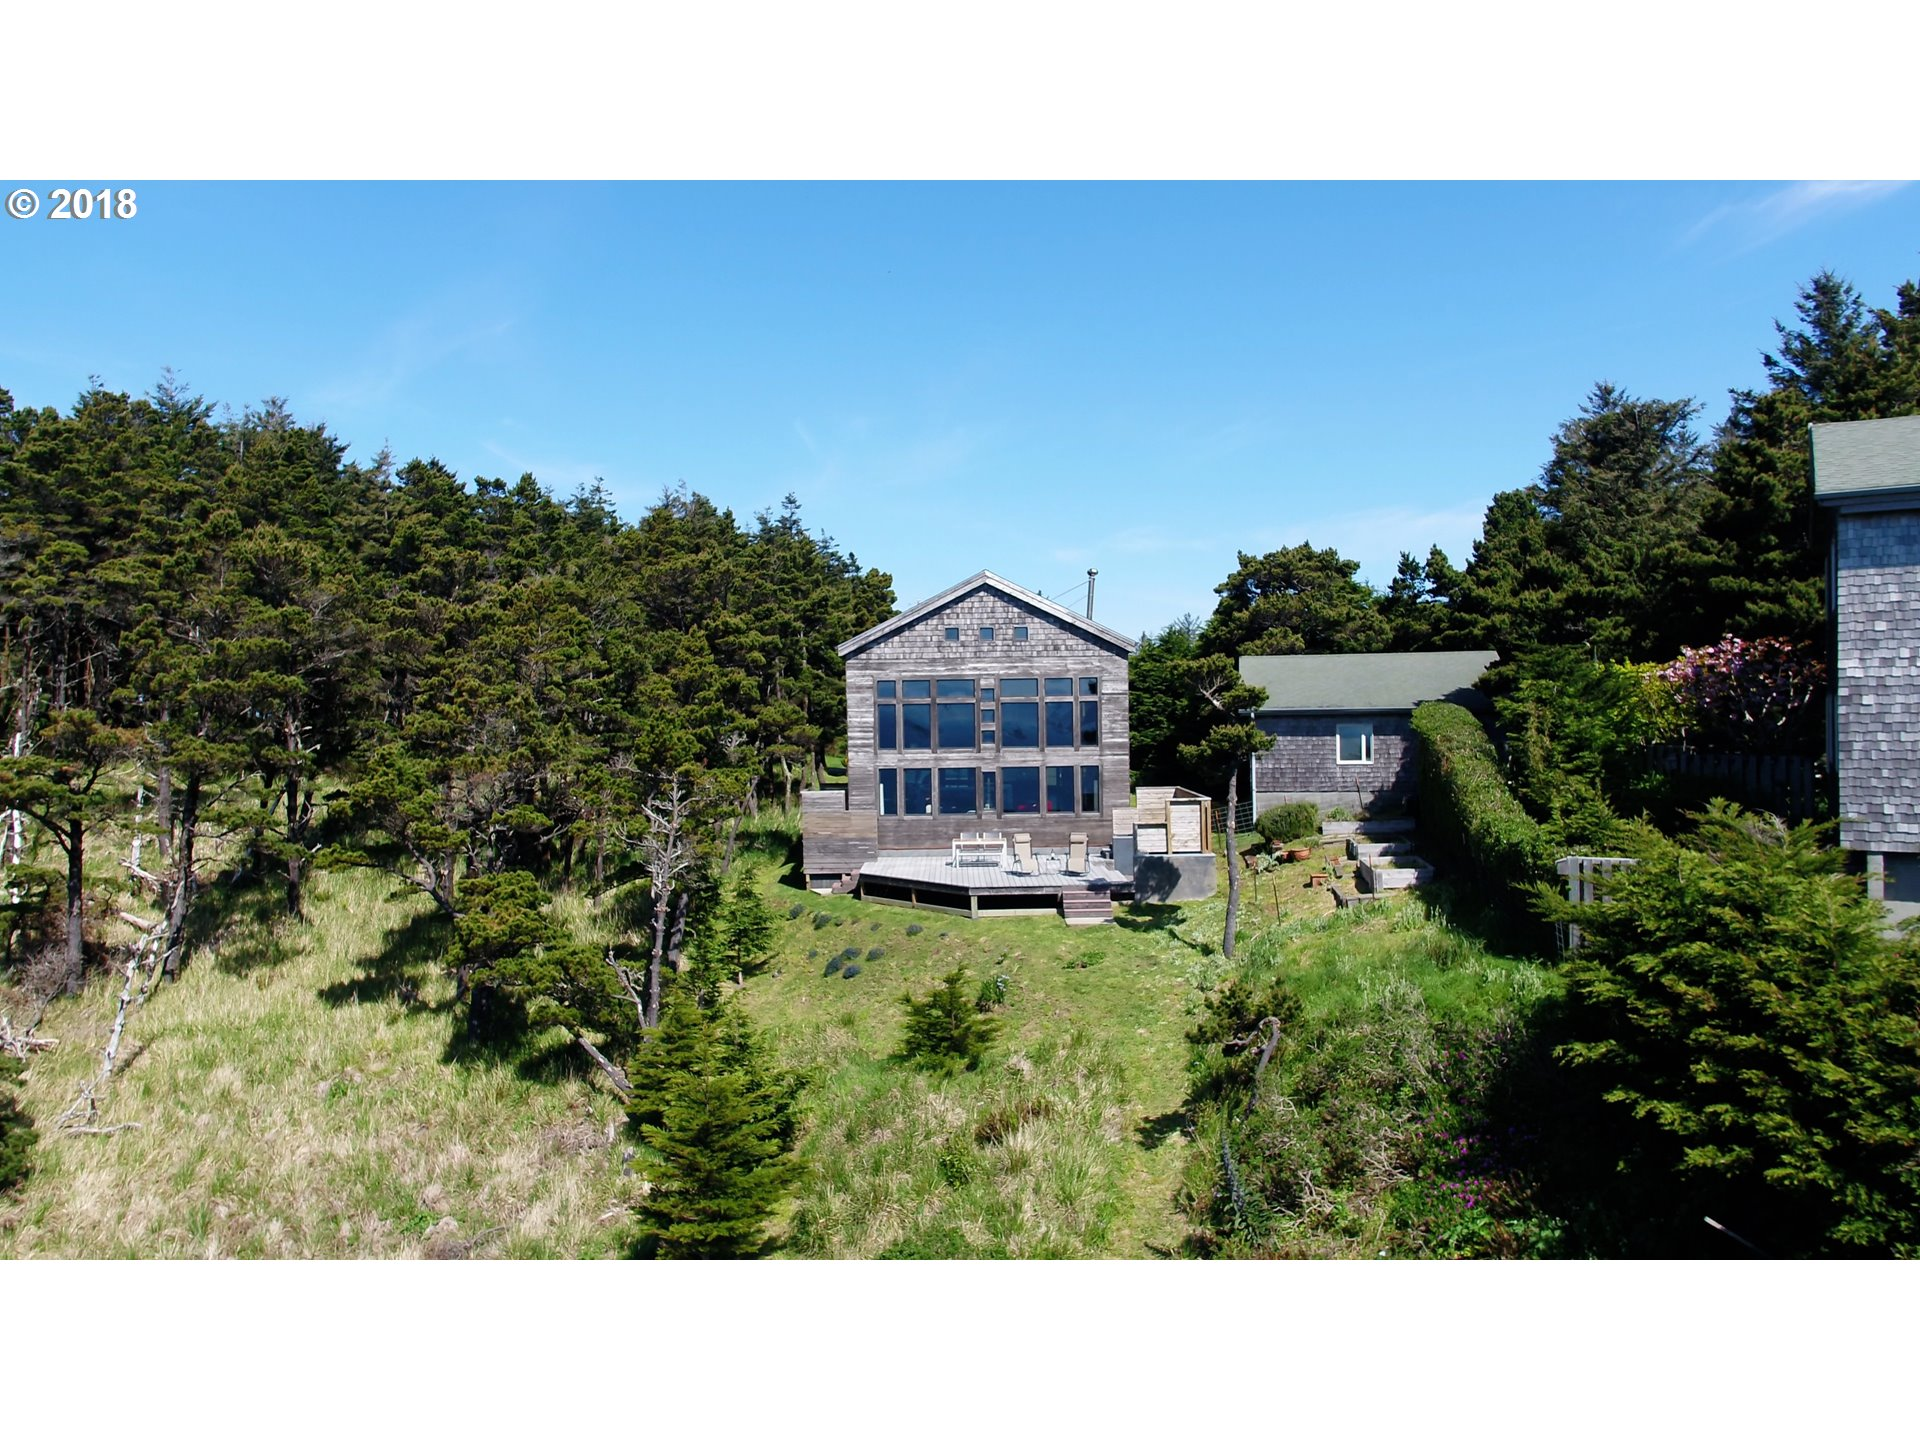 320 COAST GUARD HL RD, PORT ORFORD, OR 97465  Photo 4